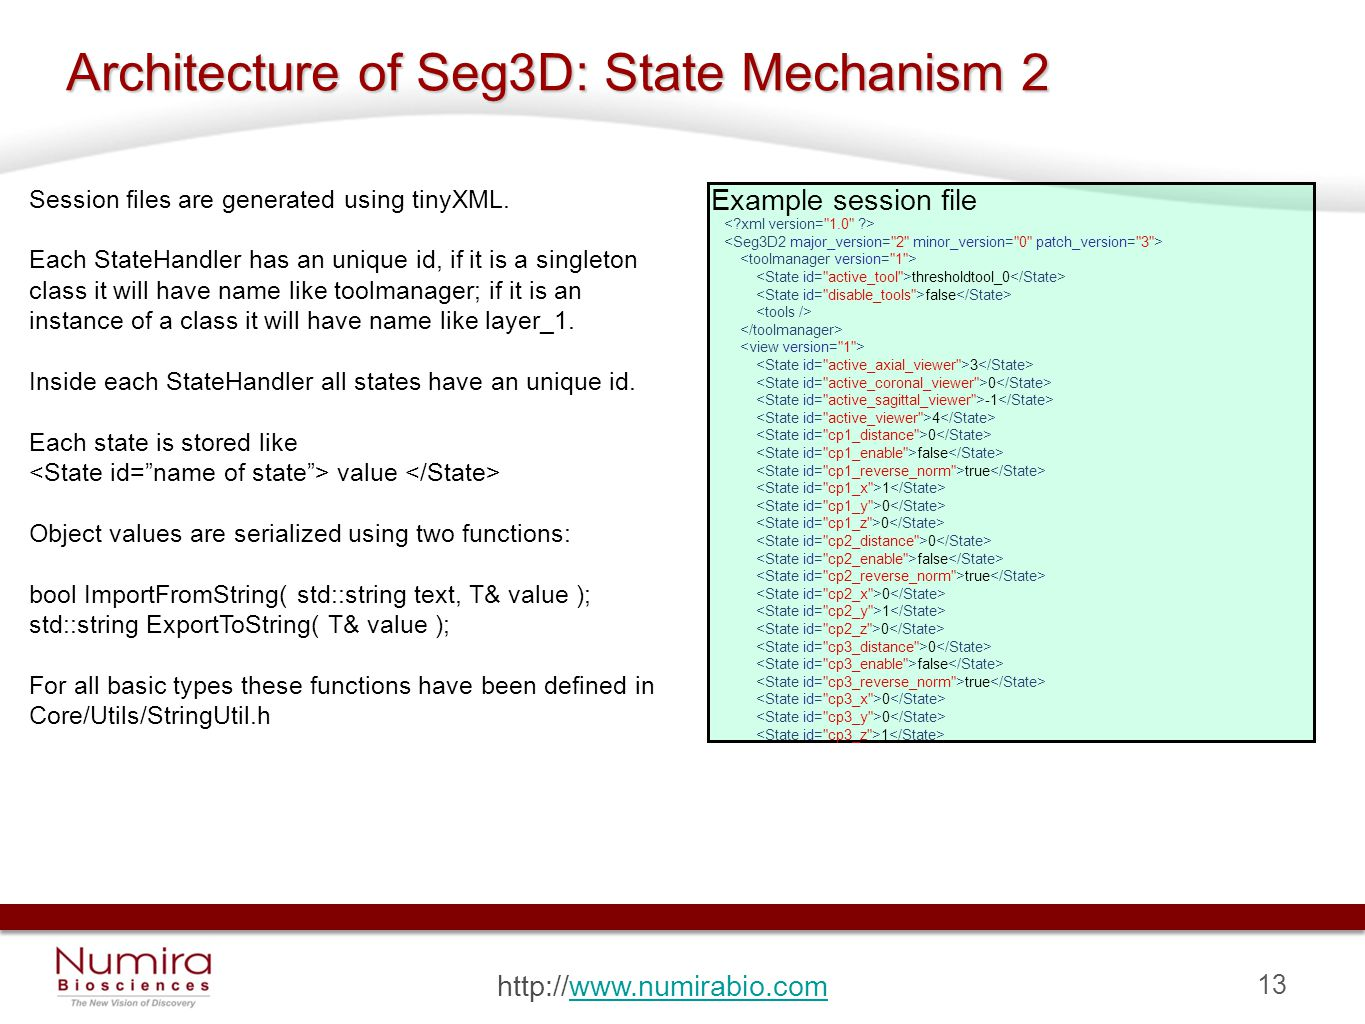 13 http://www.numirabio.comwww.numirabio.com Architecture of Seg3D: State Mechanism 2 Session files are generated using tinyXML.